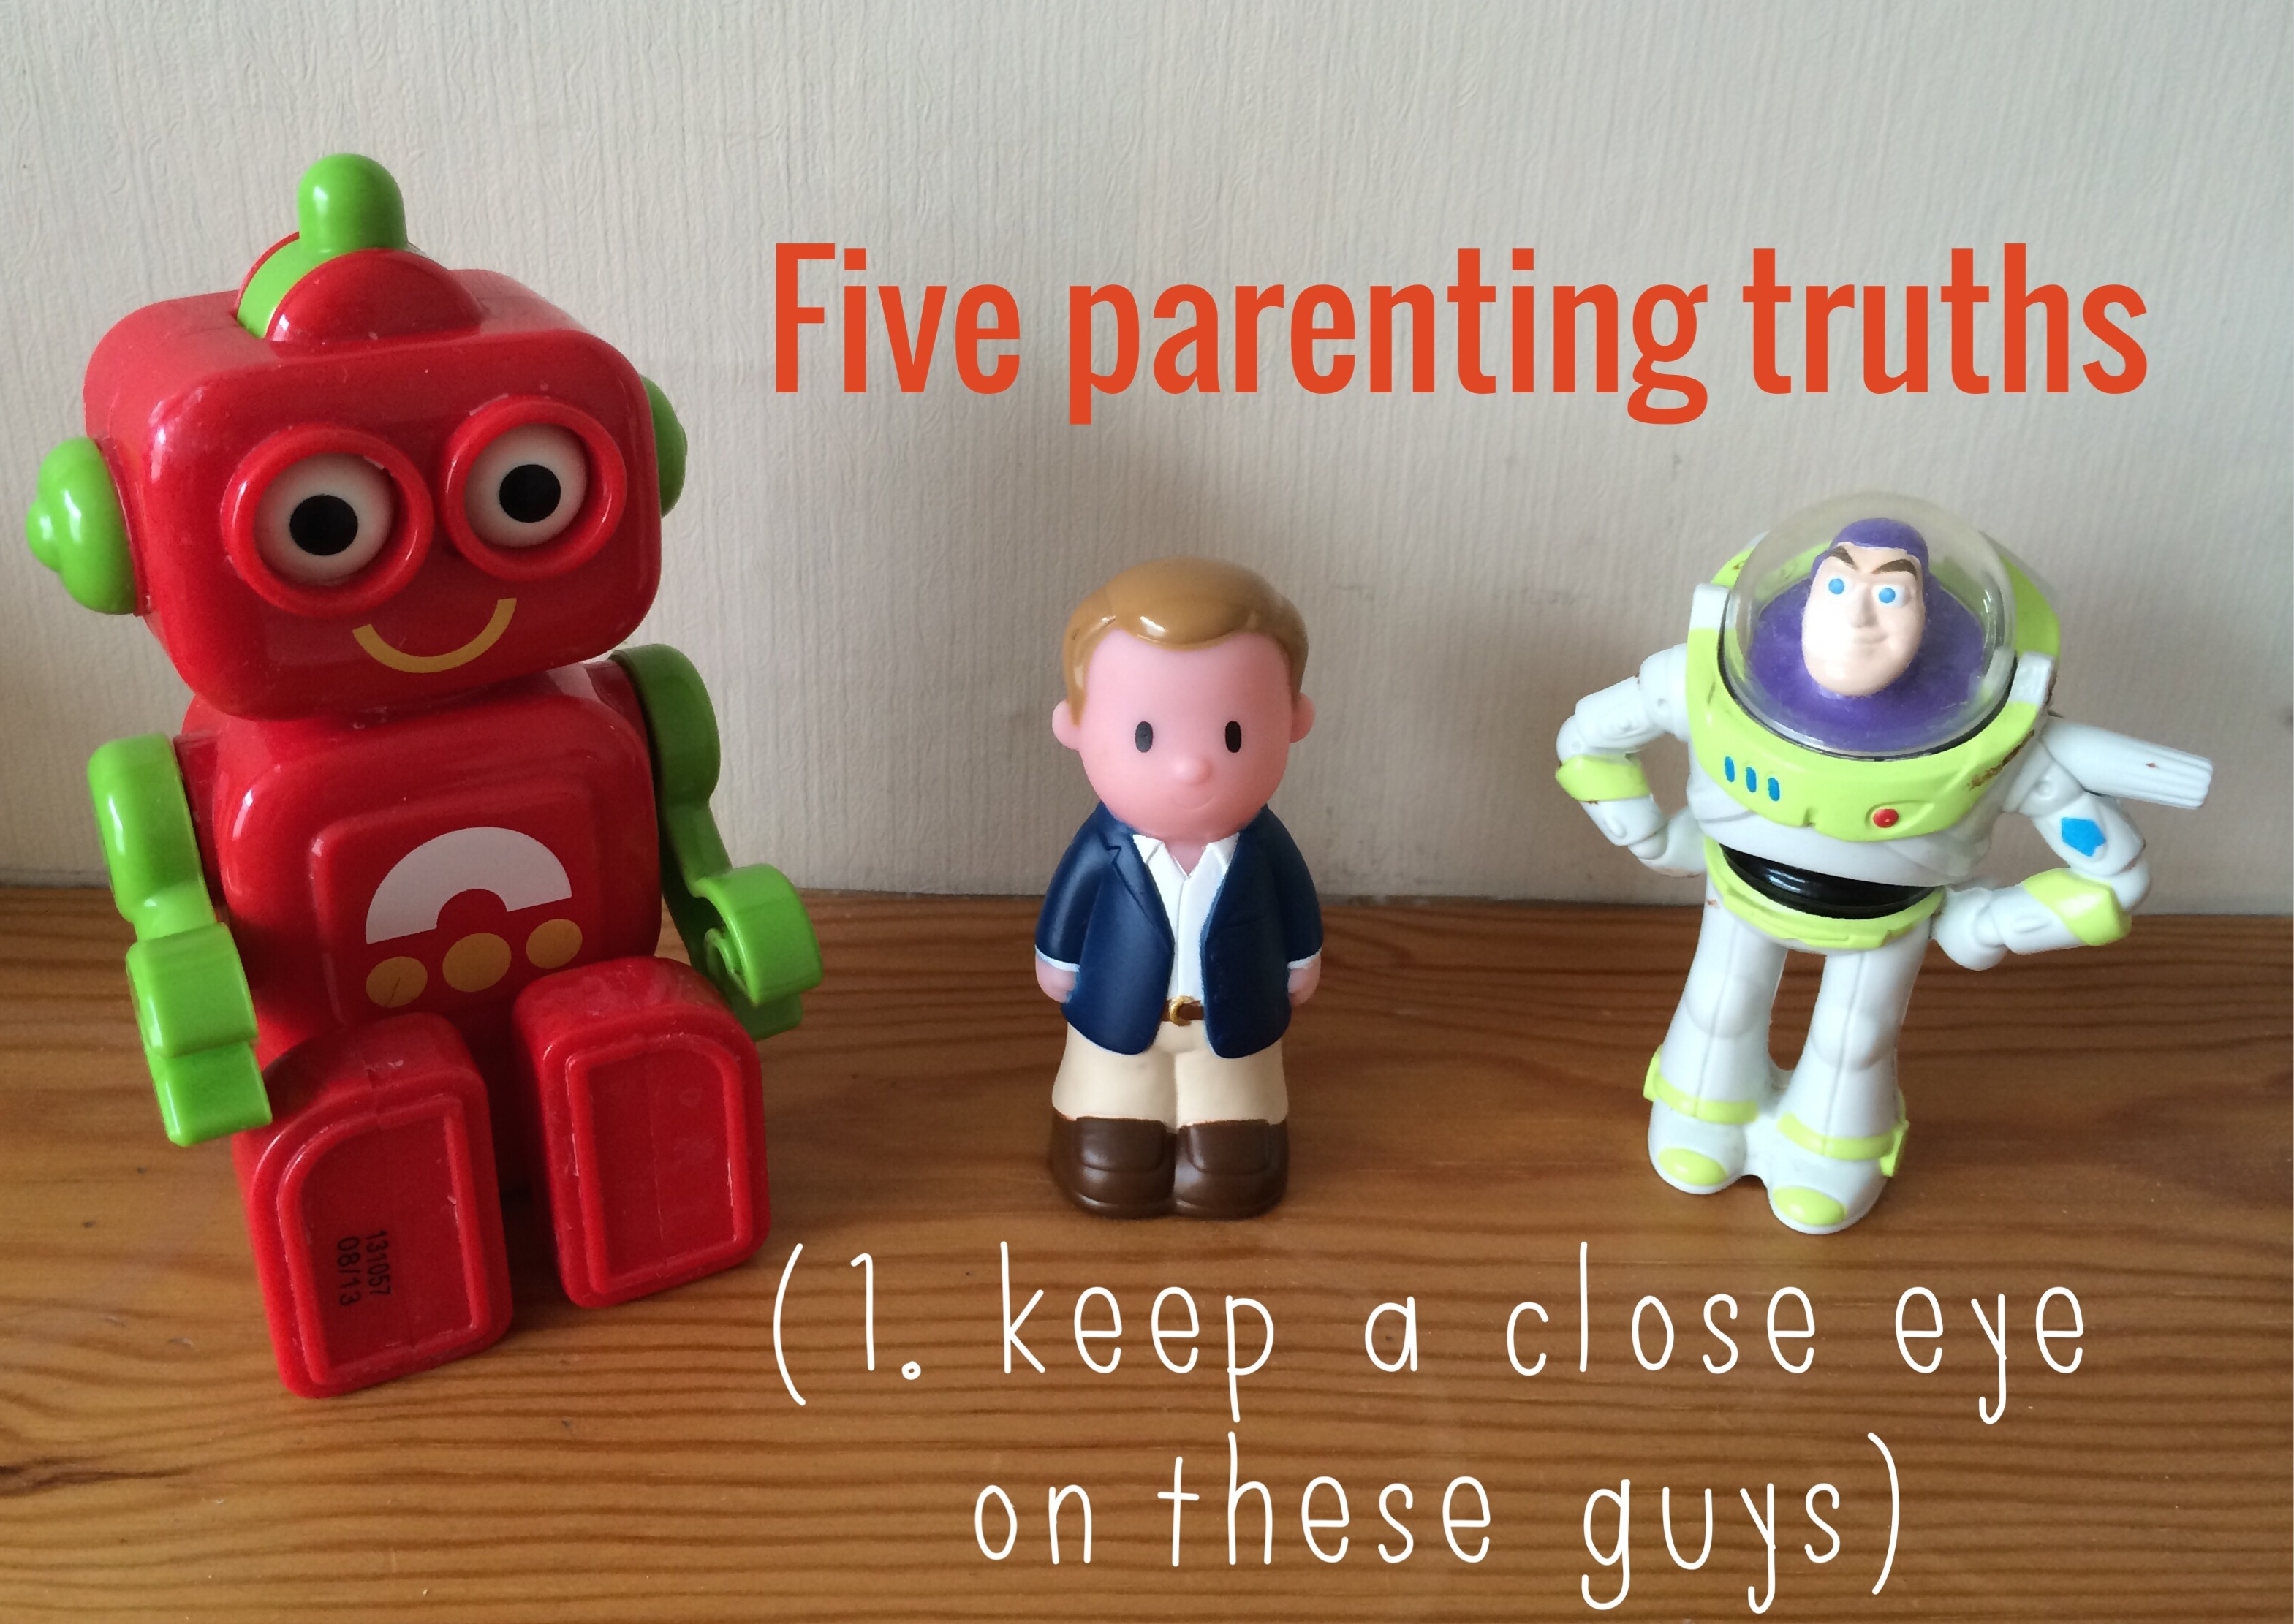 Five truths about parenting